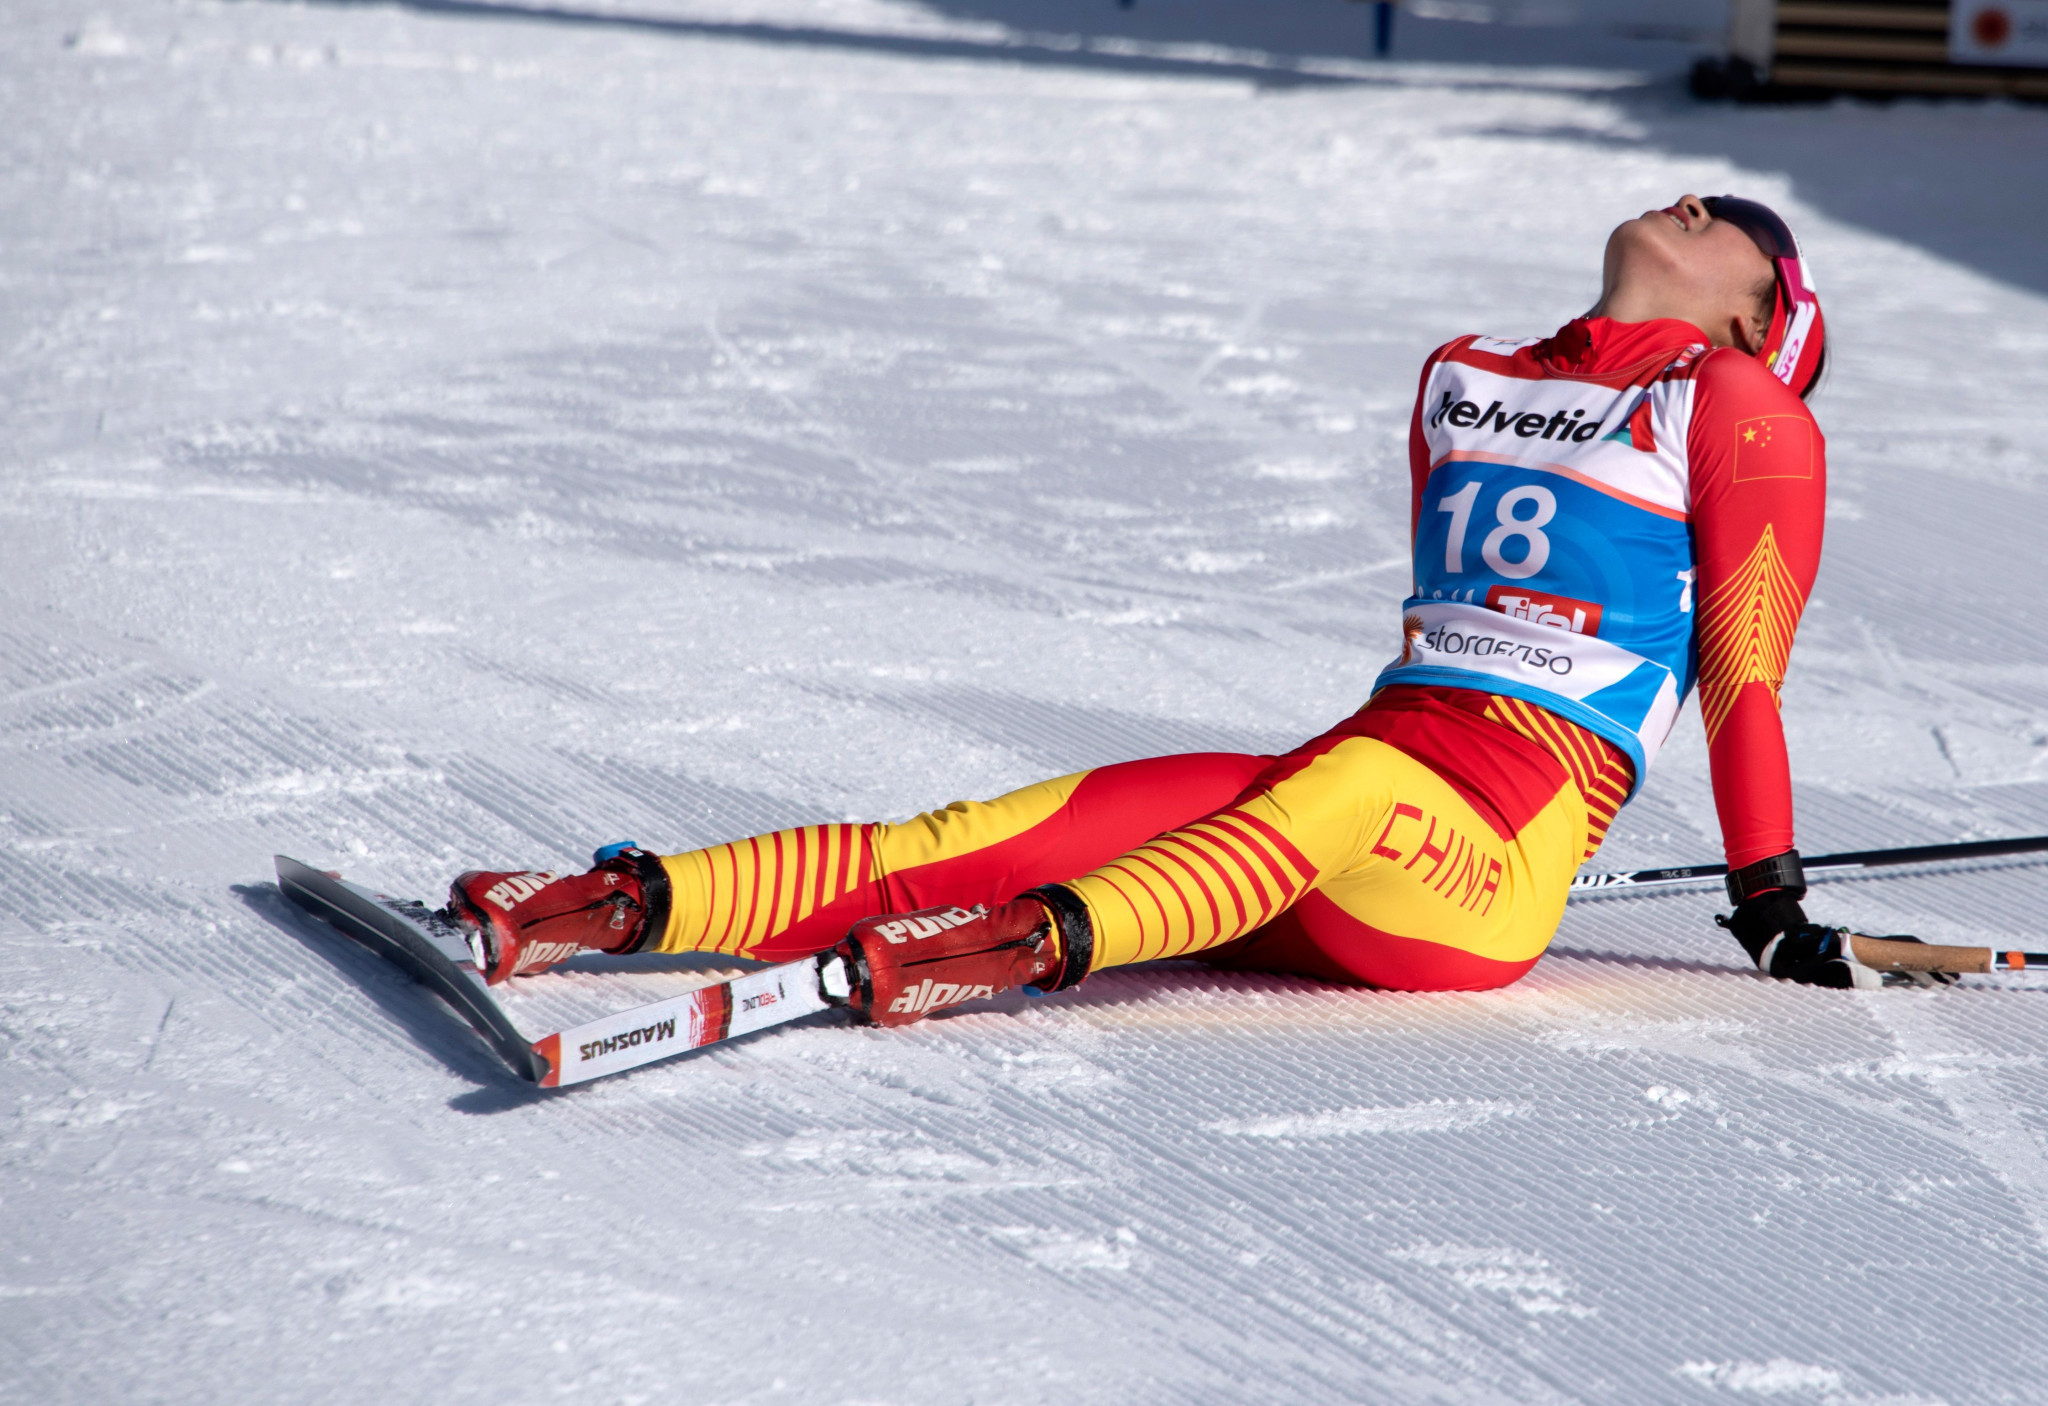 Afterwards in the finish area, she appeared exhausted ©Getty Images